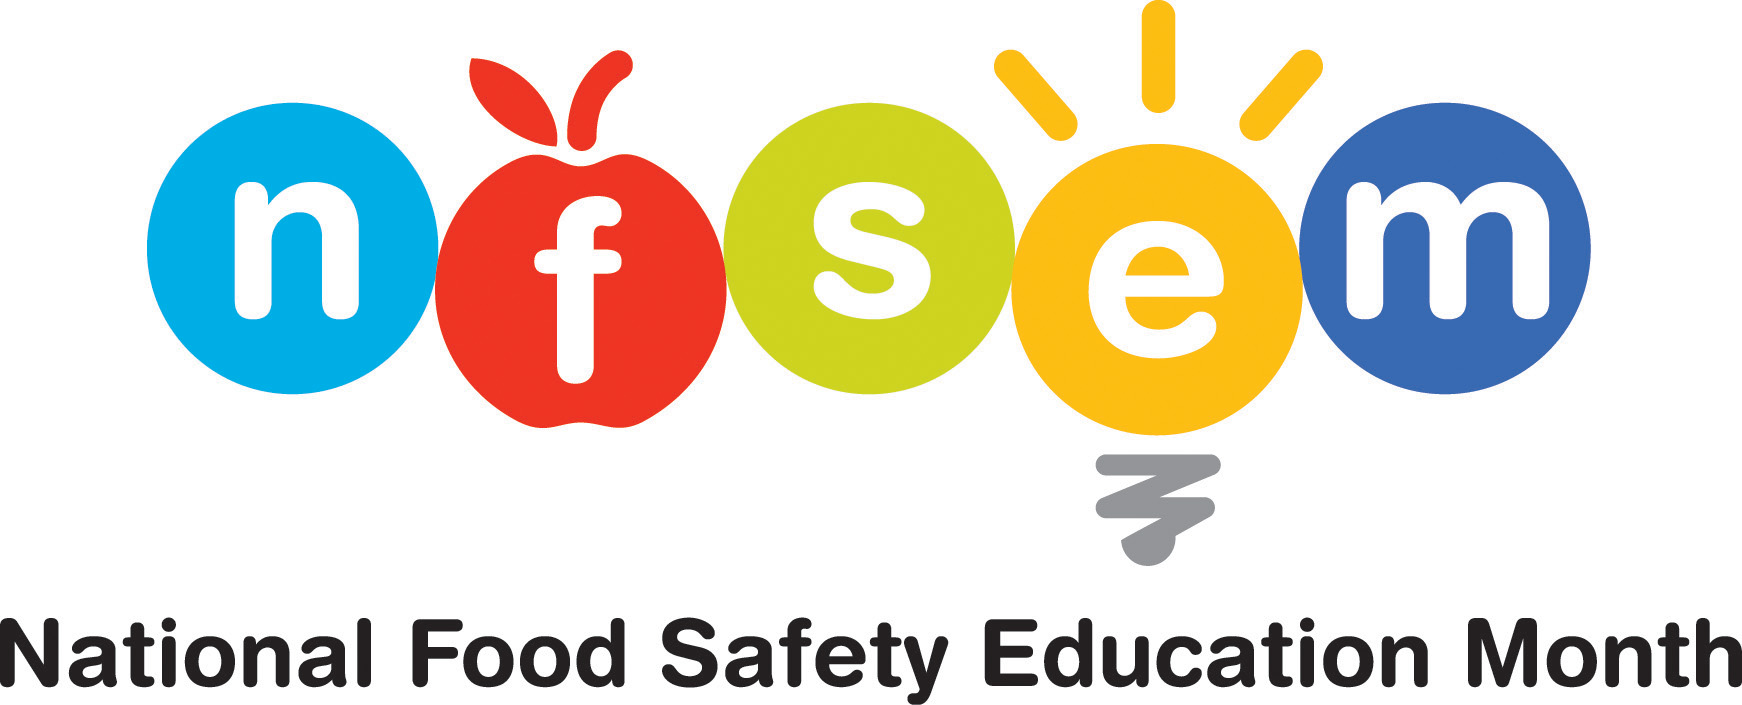 National food safety education month 2011 delaware restaurant are based on the servsafe food safety training and certification program the materials communicate concepts clearly and quickly to employees xflitez Image collections